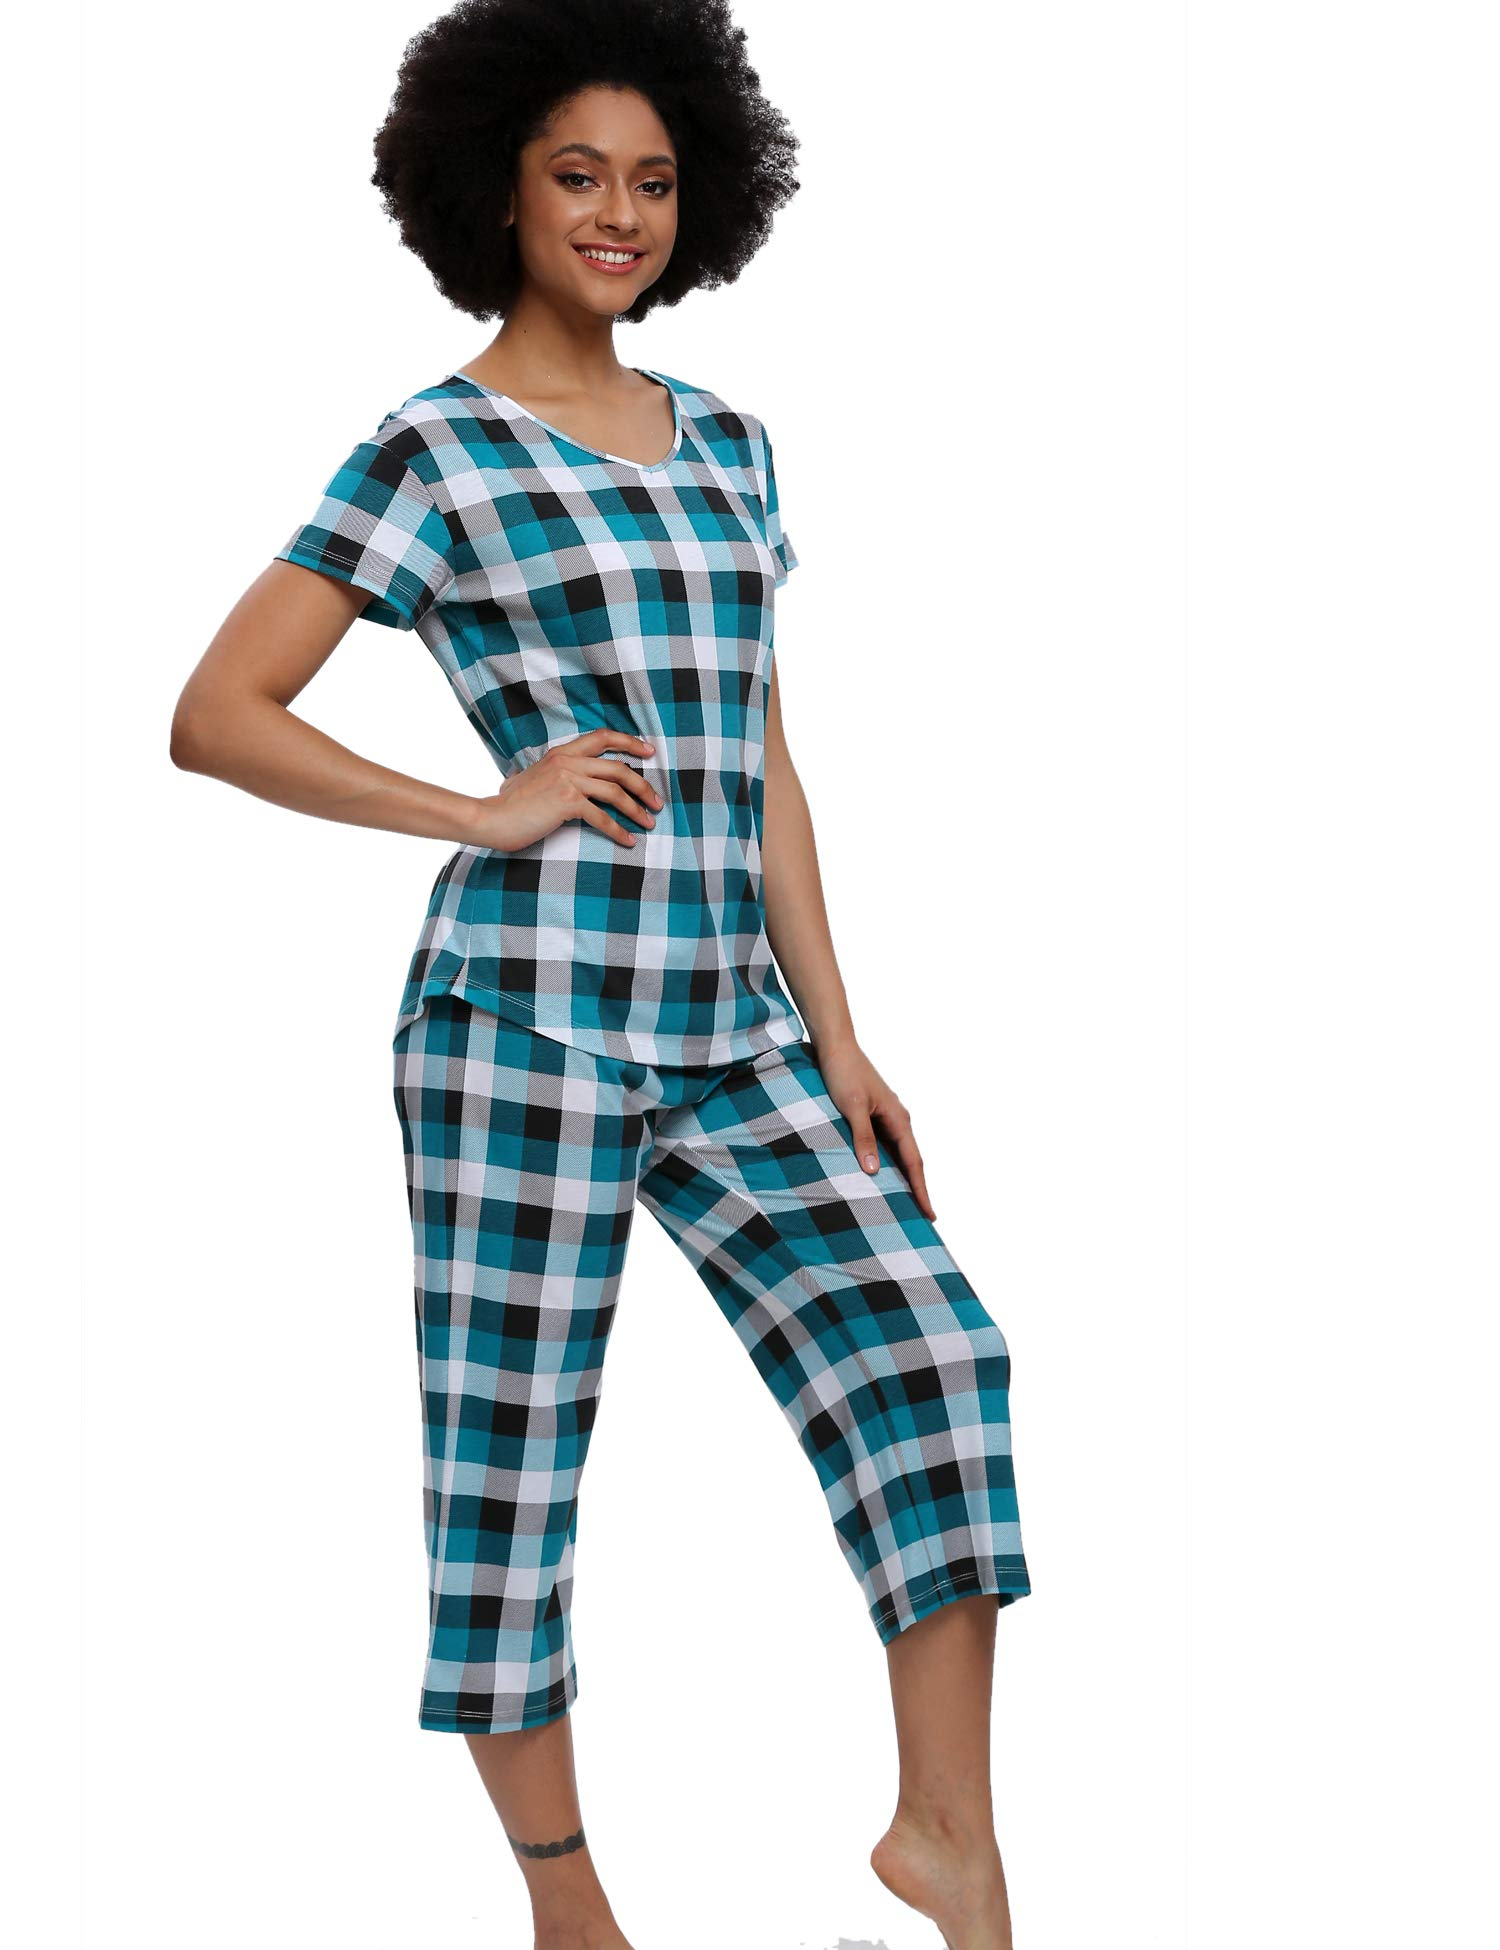 ENJOYNIGHT Pajamas Set Women\'s Cute Tops with Capri Pants Sleepwear Sets Plus Pj Lounge Nightgowns (Lattice G, XXX-Large)